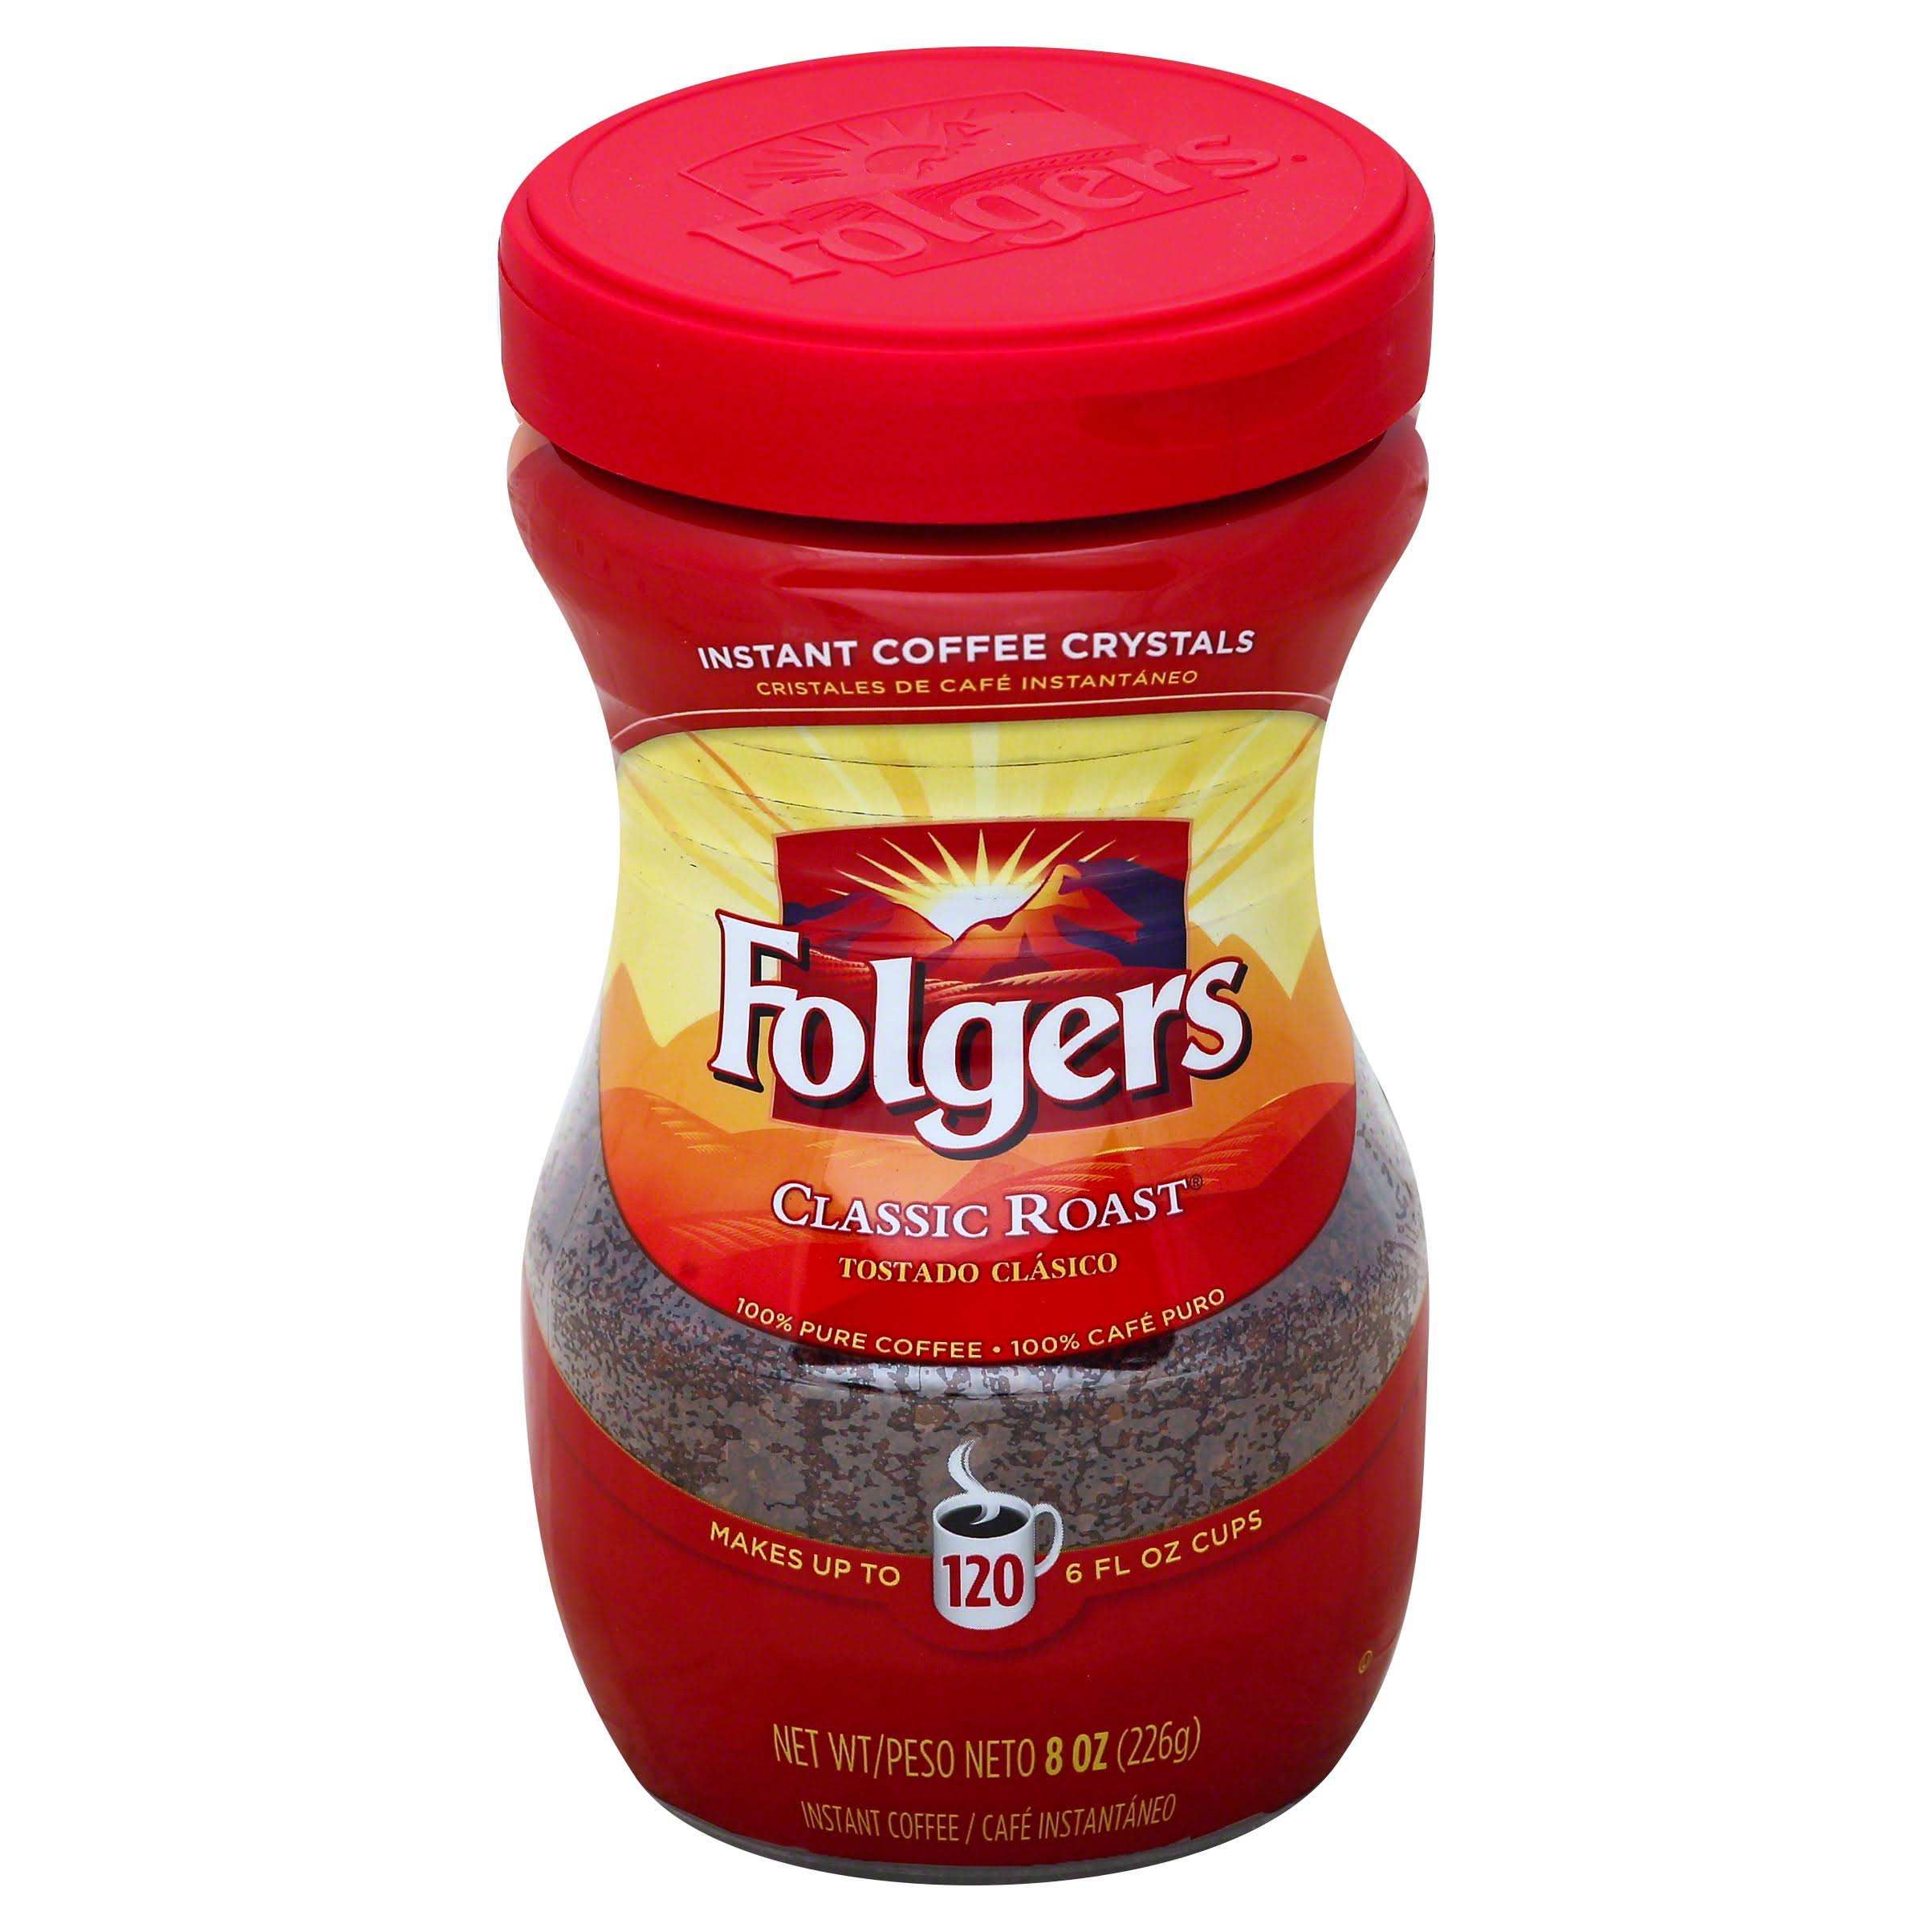 Folgers Classic Roast Crystals Instant Coffee - 8oz